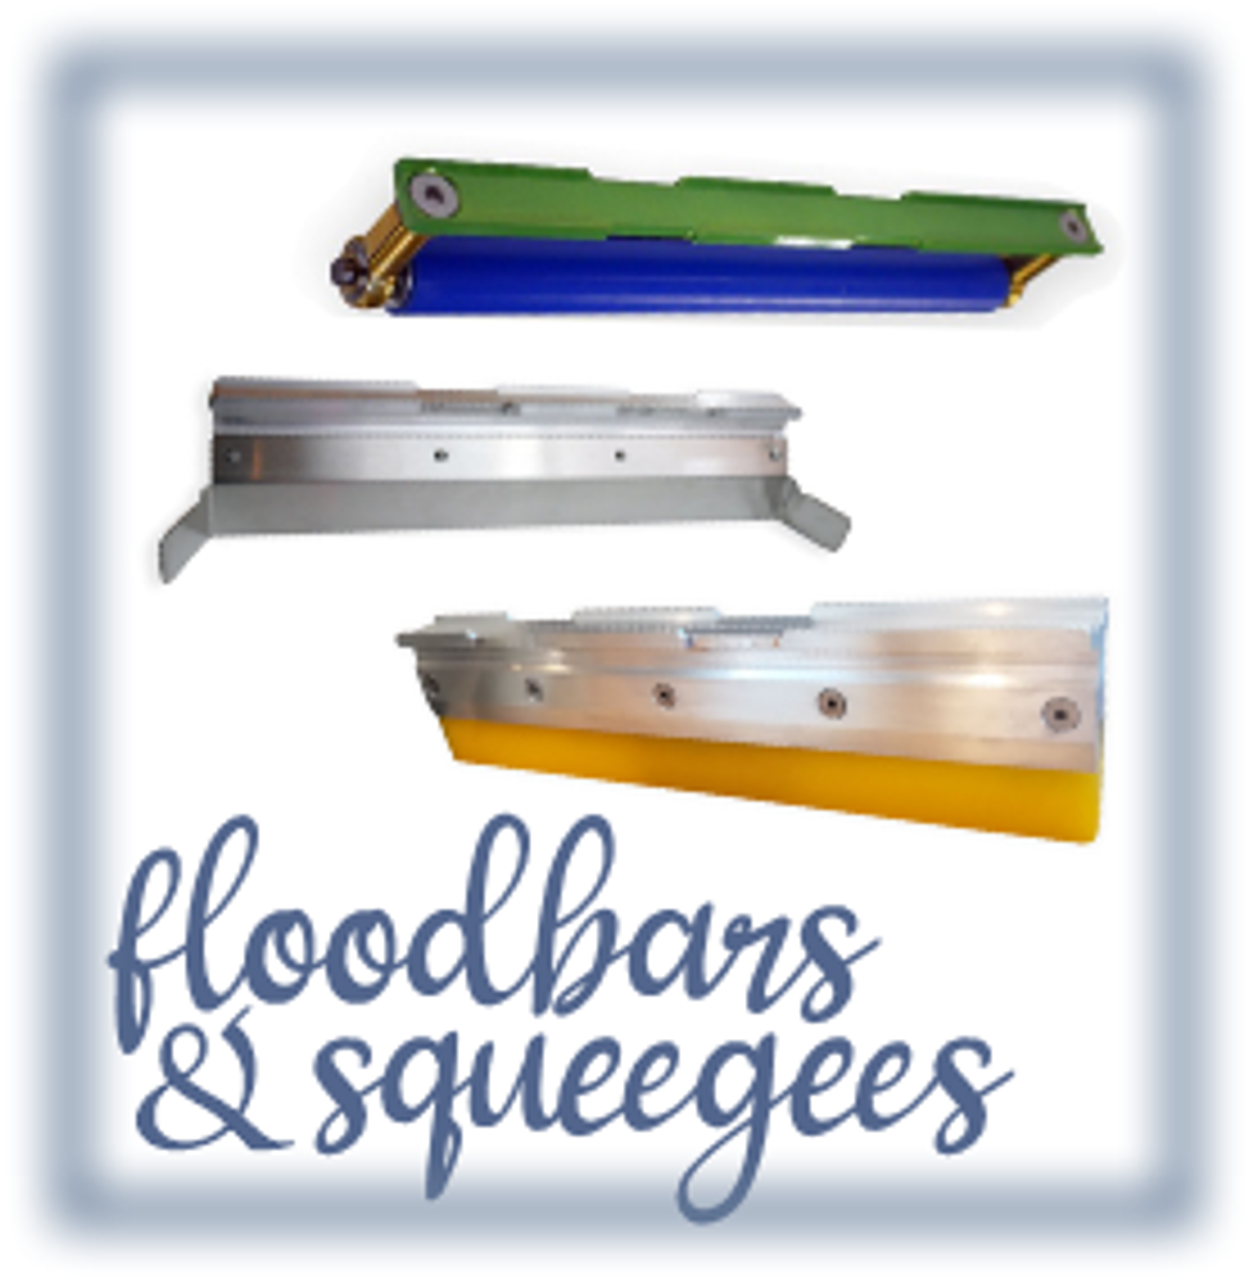 Flood Bars and Squeegee Holders